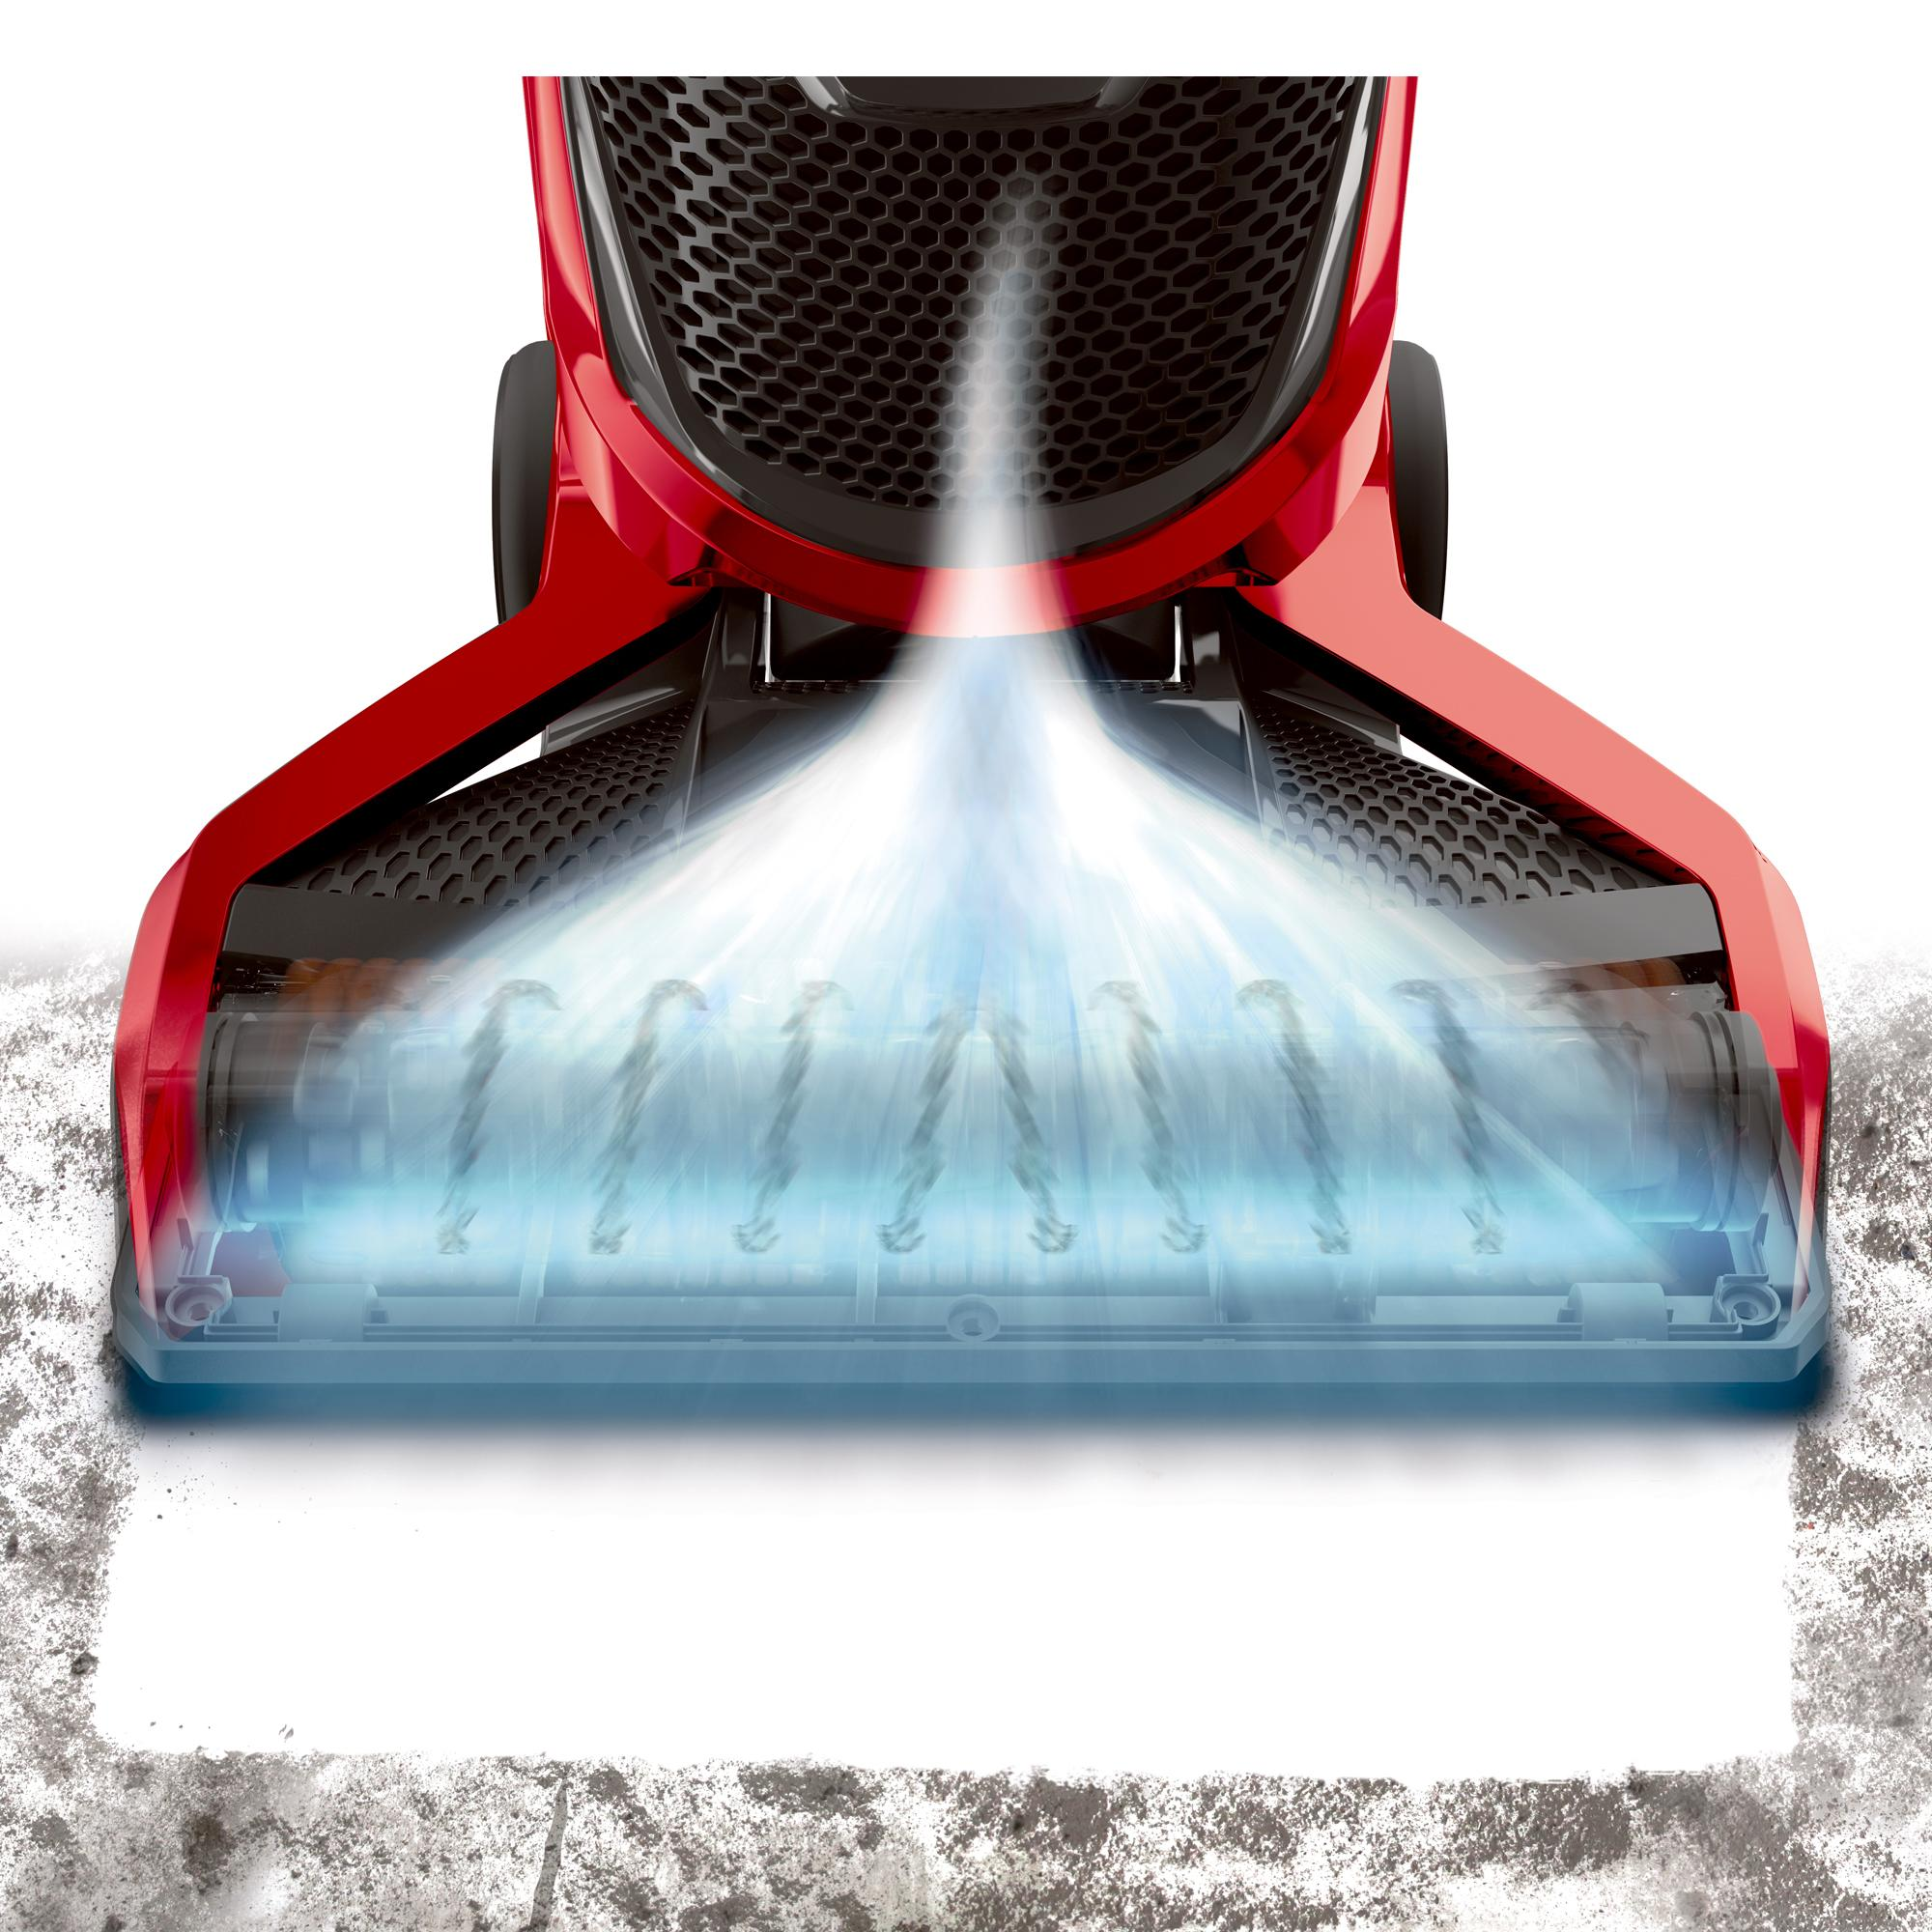 Bissell Powerclean Upright Bagless Vacuum 1306C Amazon